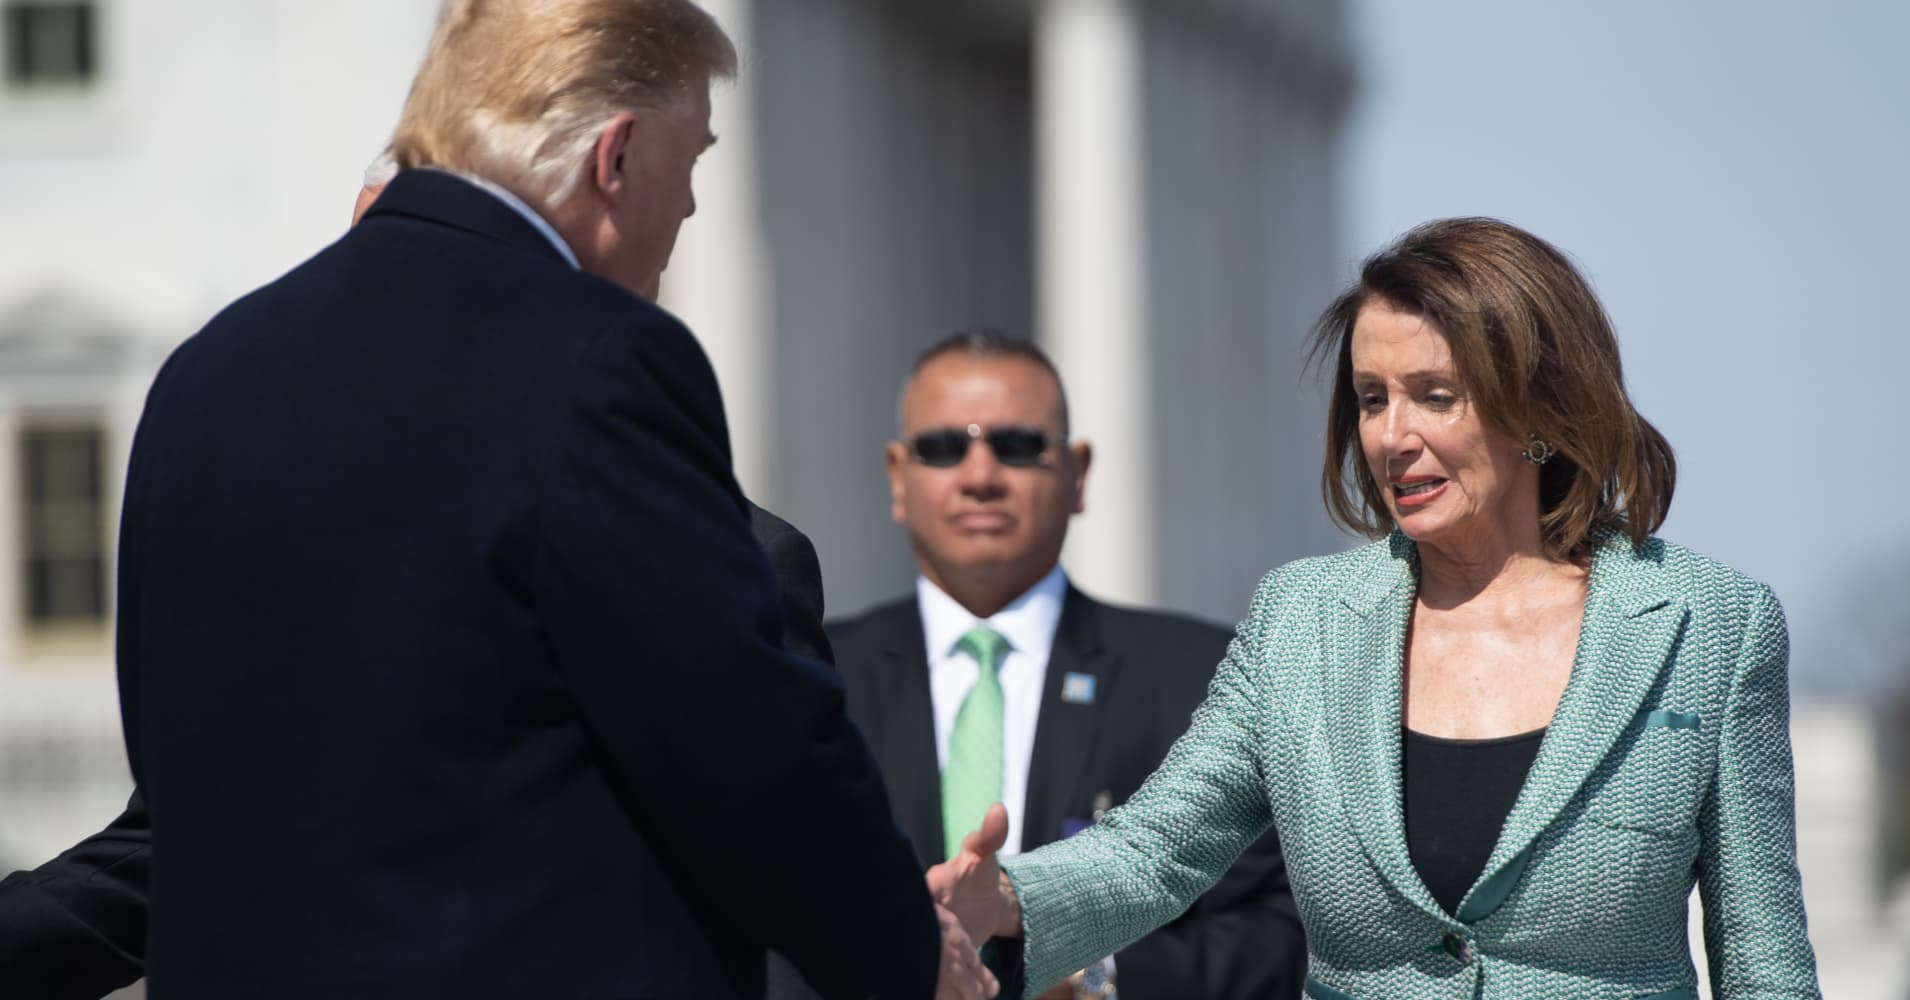 cnbc.com - John Harwood - Now that the Mueller report is in, Nancy Pelosi faces some tough choices